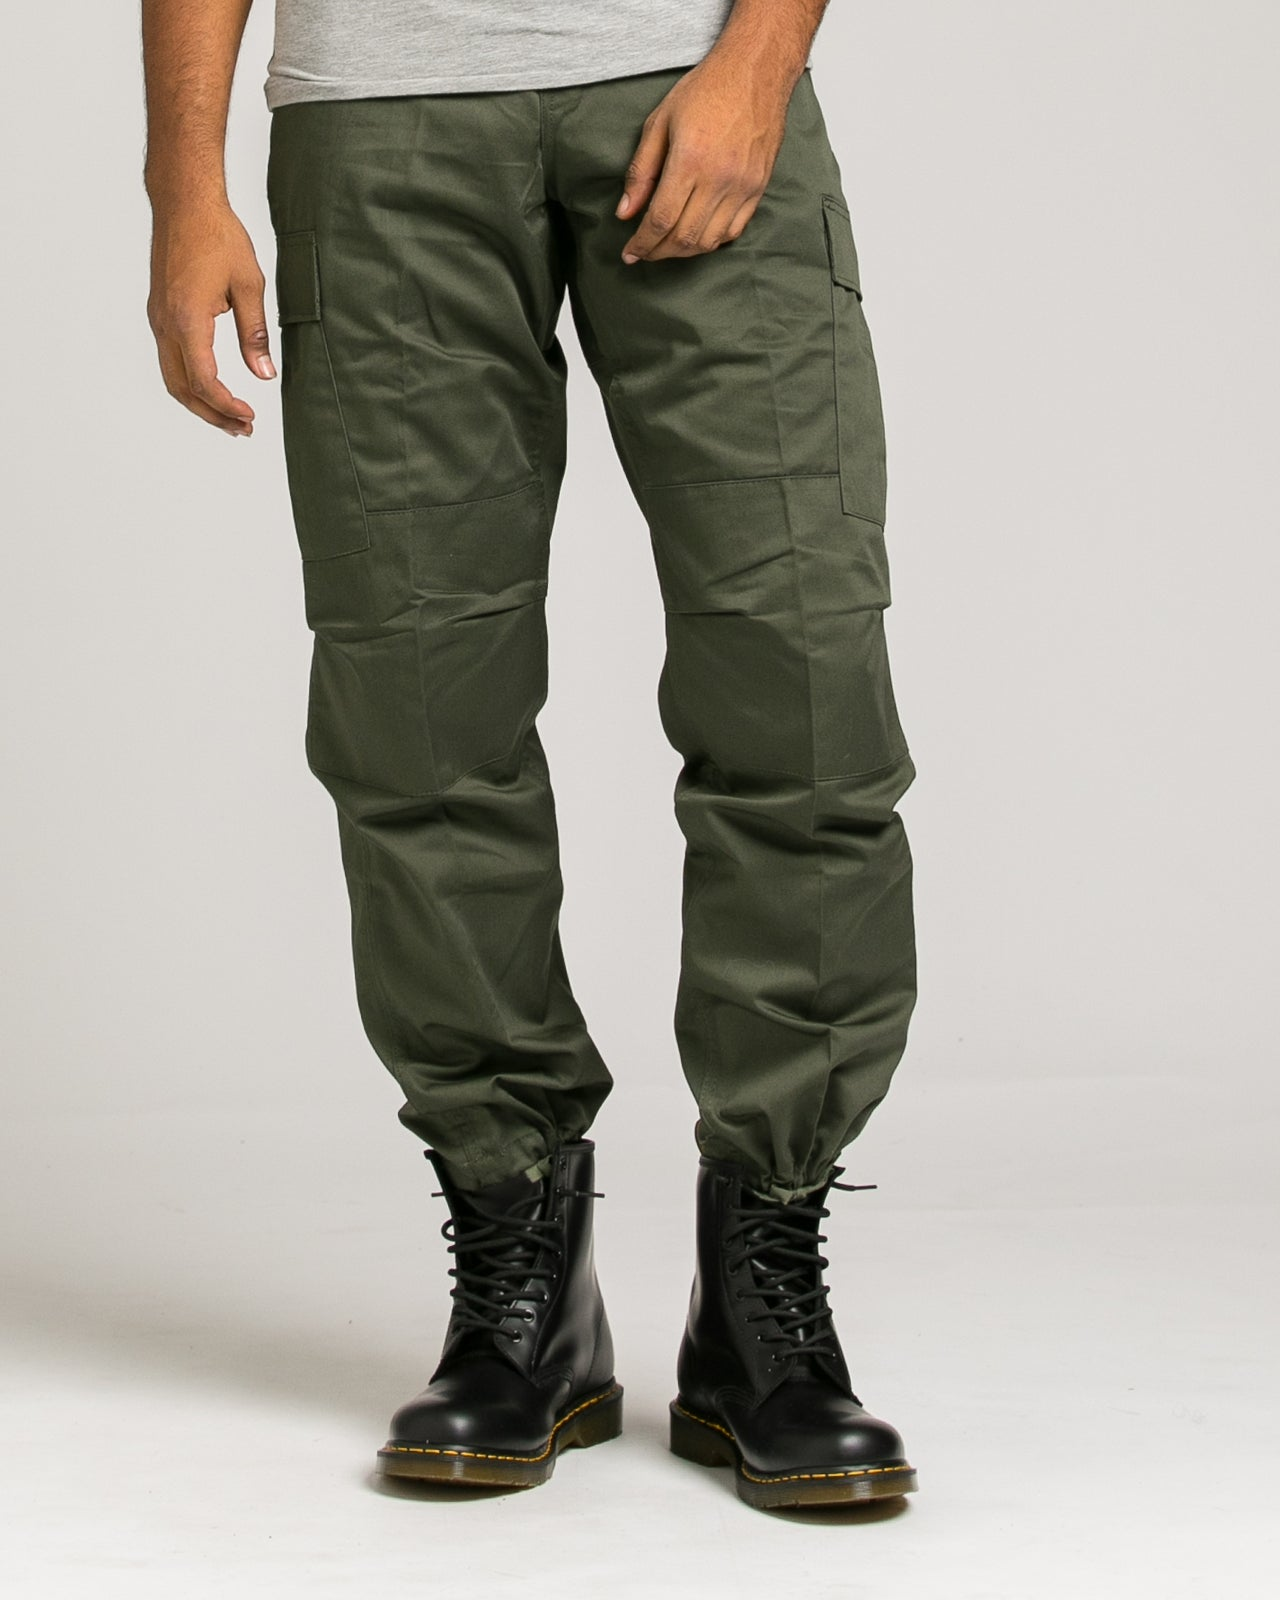 B.D.U. Pants - Color: Olive Drab | Green